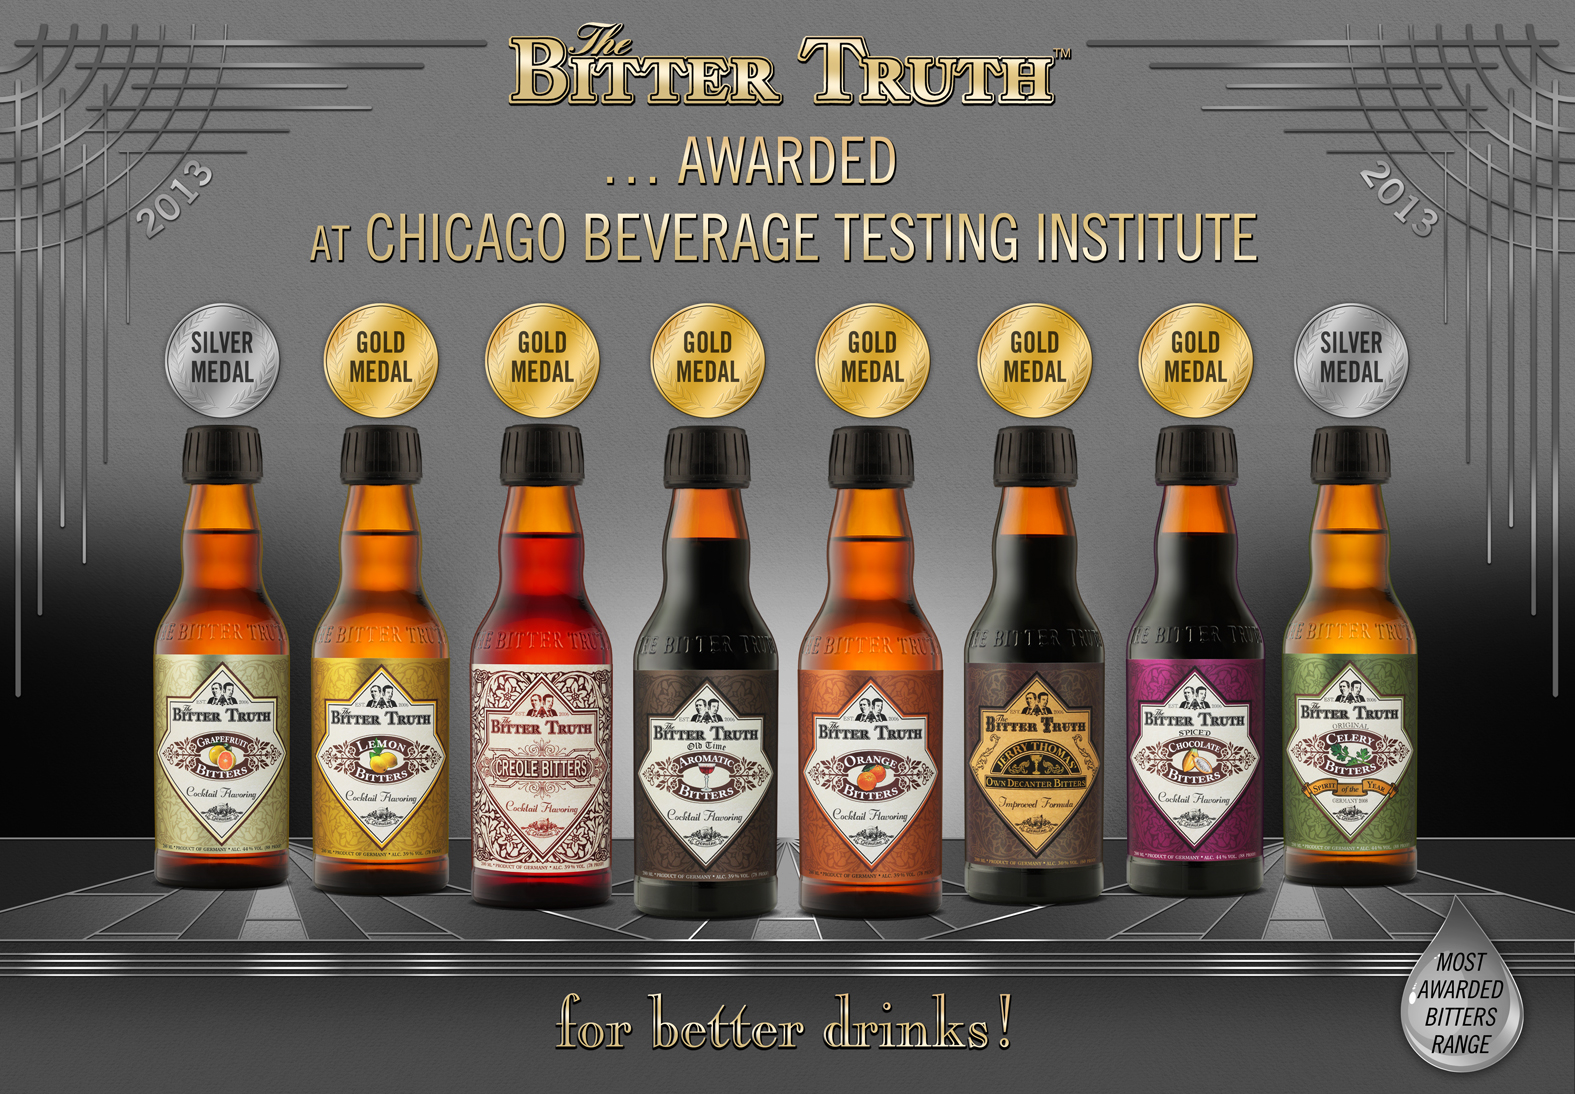 The Bitter Truth wins Gold & Silver Medals at Chicago Beverage Testing Institute